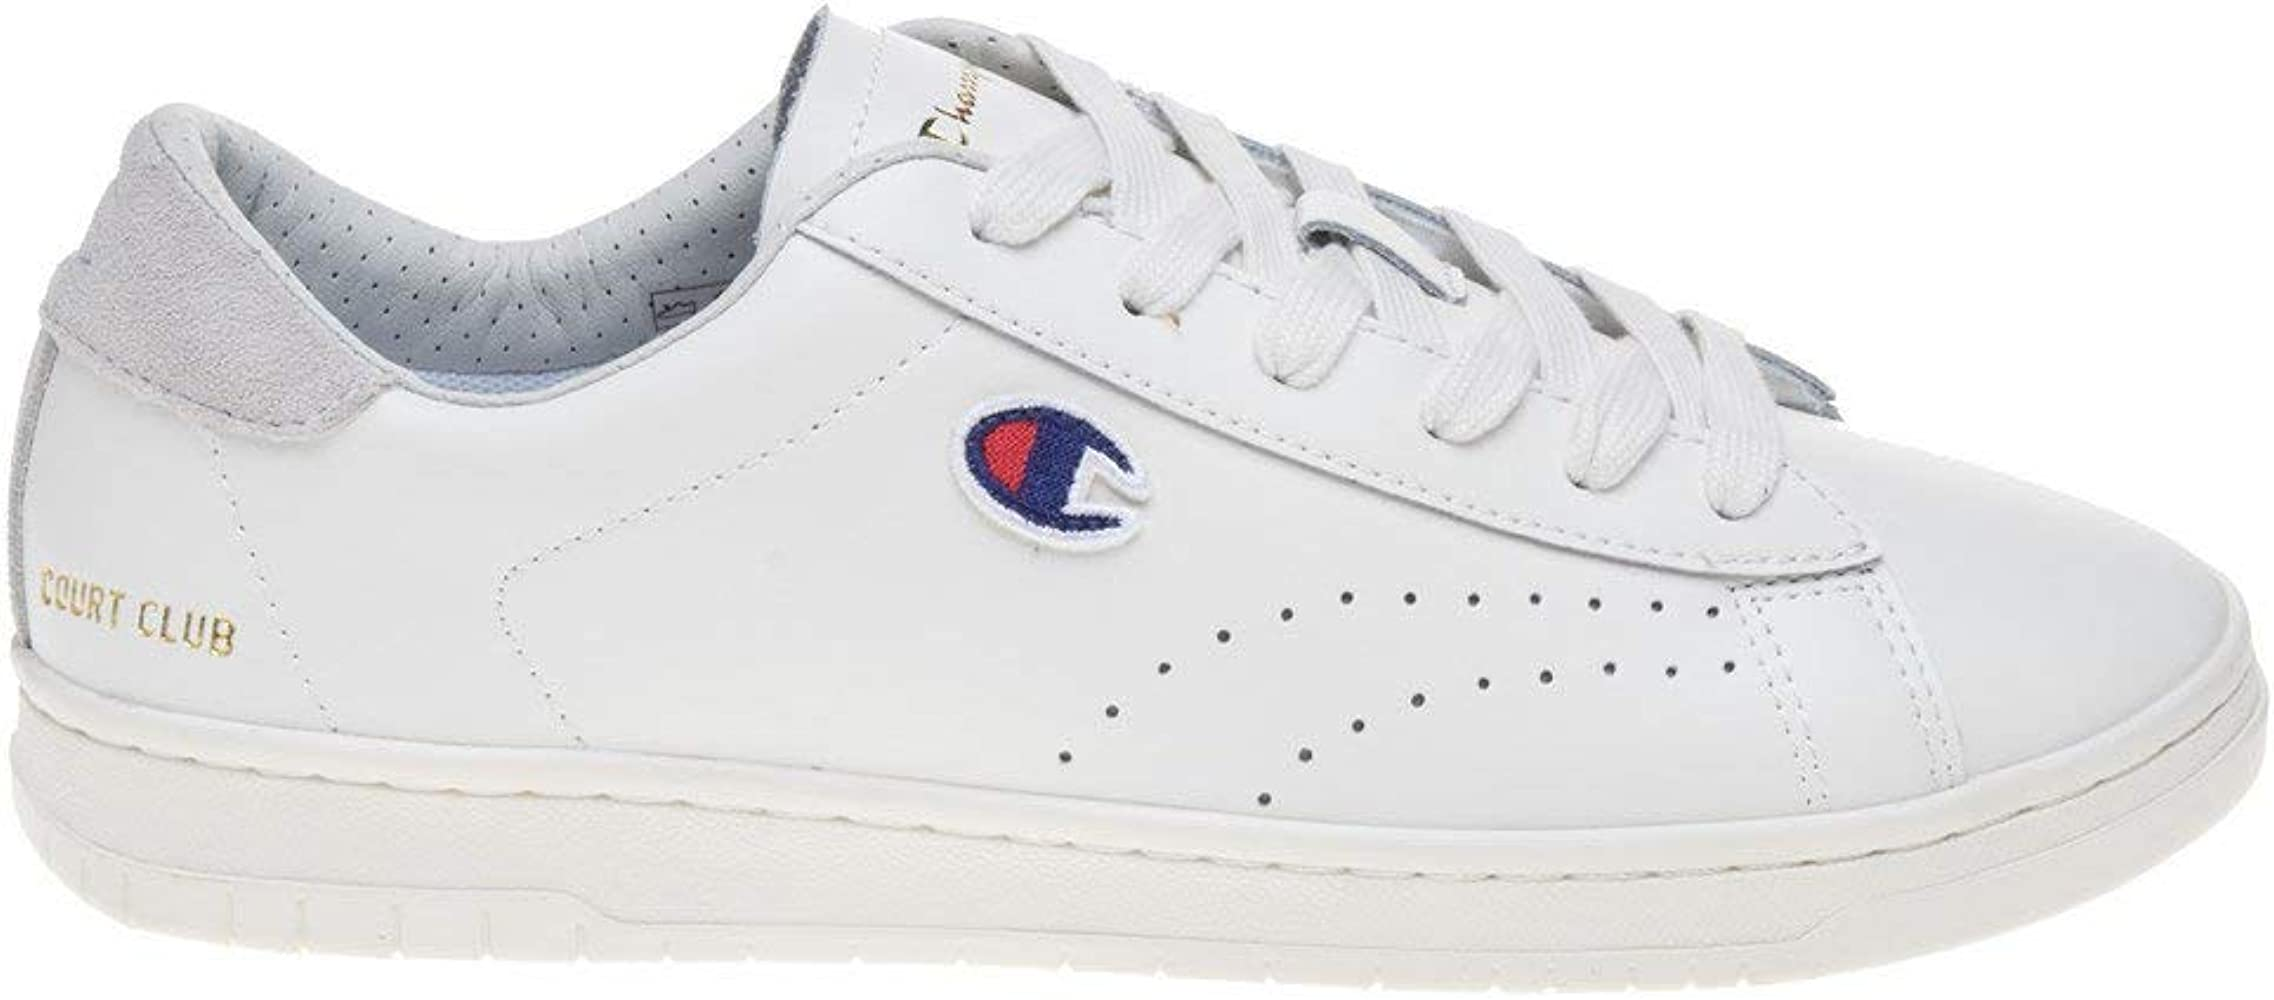 Champion Court Club Mens Sneakers White